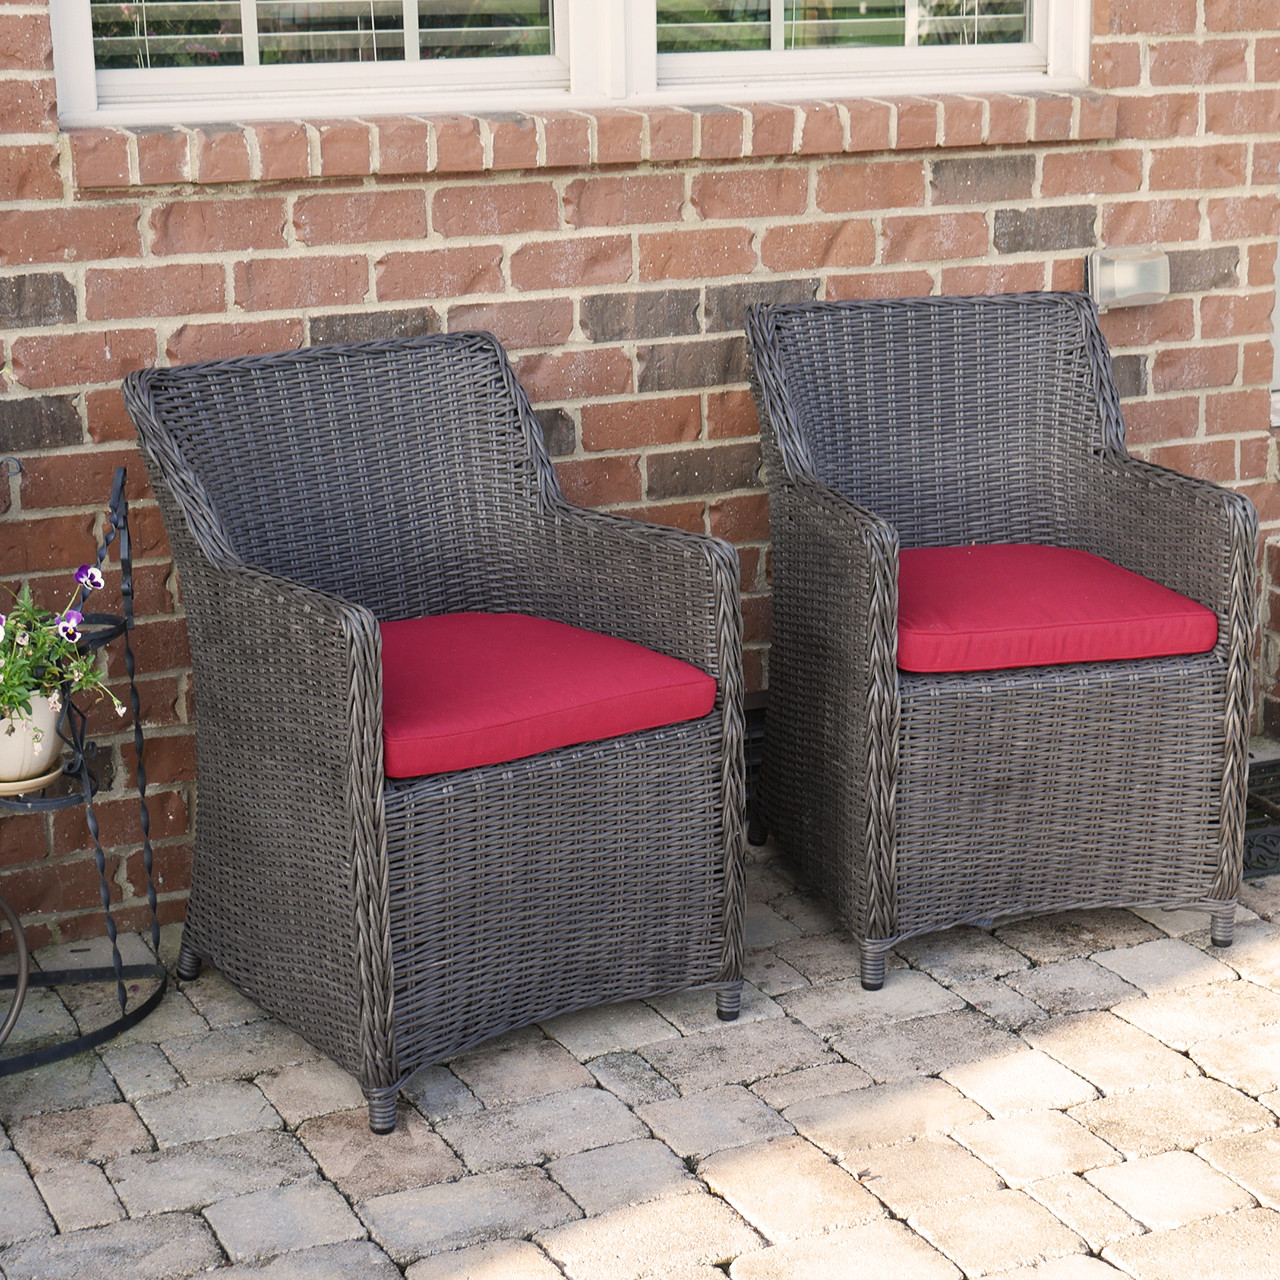 wicker patio chair set of 2 gold wing back chairs sea island lounge with red cushion